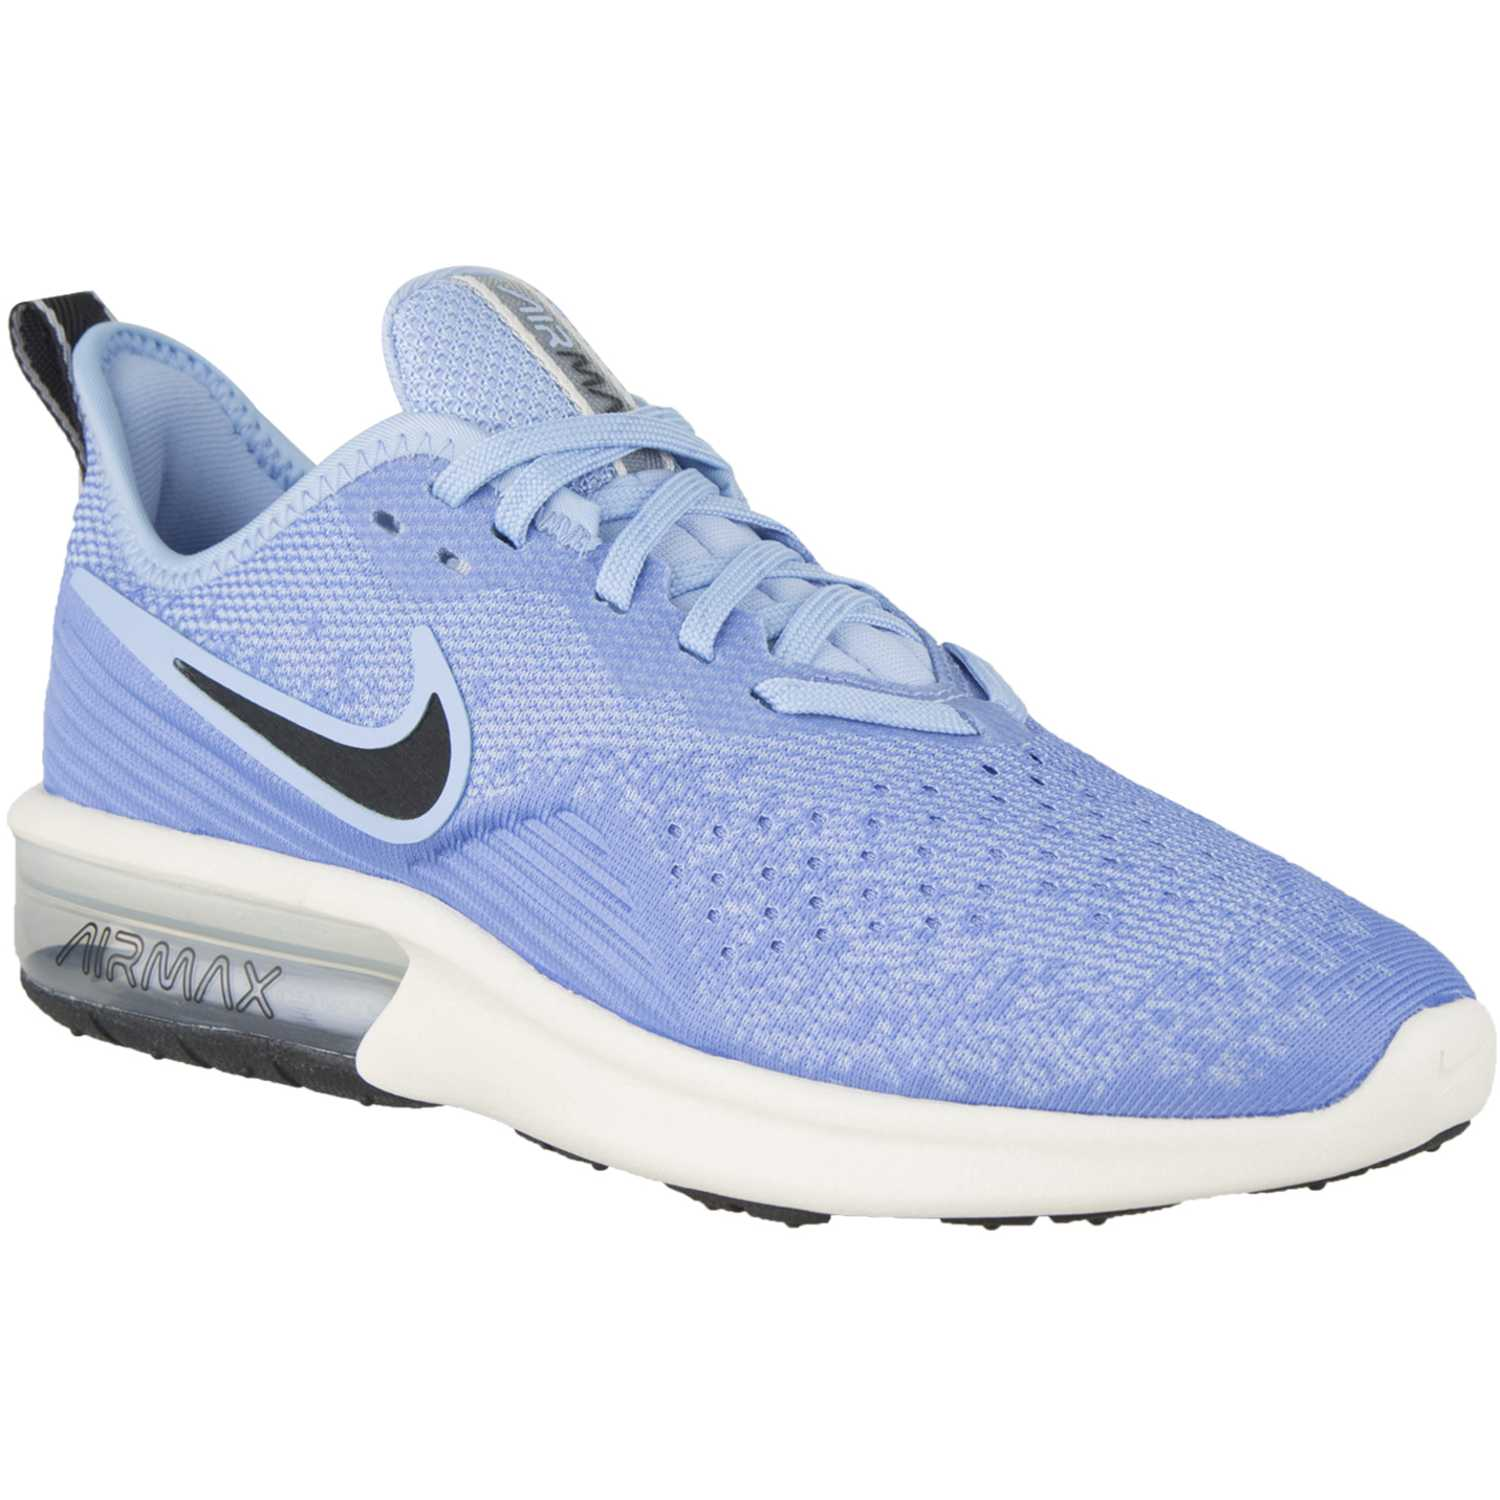 Deportivo de Mujer Nike Celeste / blanco wmns nike air max sequent 4